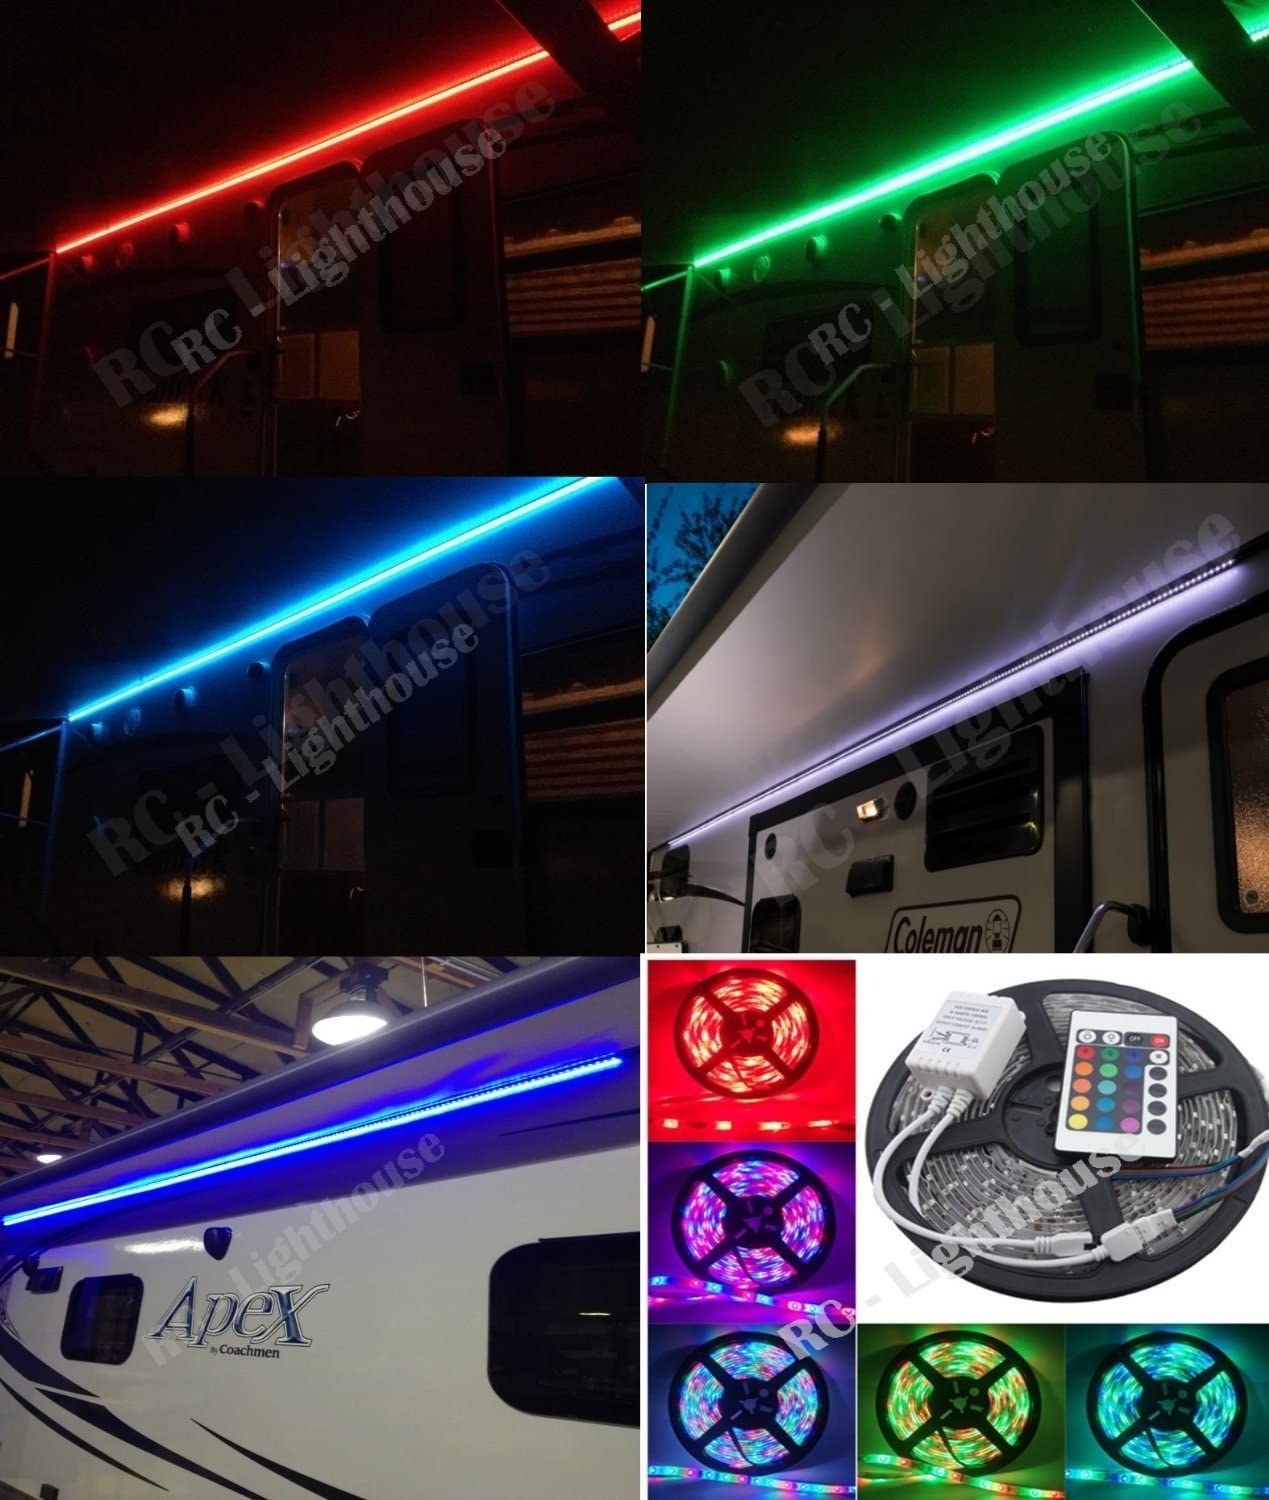 Rv Awning Camper Recreational Vehicle RGB with Lights 24 SEAL limited product LED Key 67% OFF of fixed price